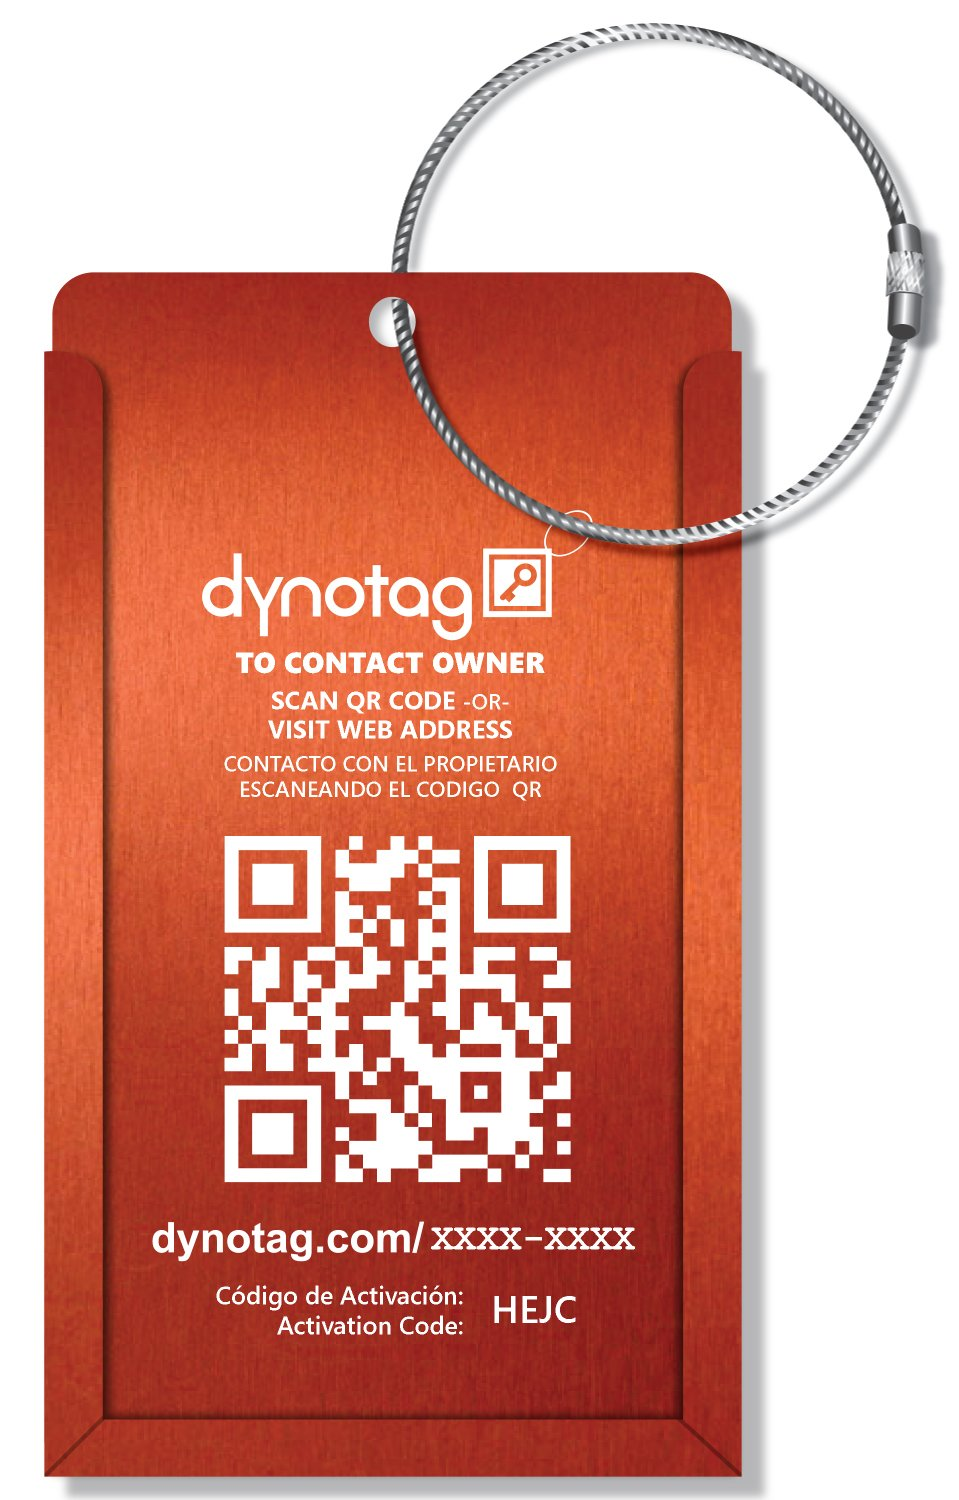 Dynotag Web Enabled Smart Aluminum Convertible Luggage ID Tag + Braided Steel Loop, with DynoIQ & Lifetime Recovery Service (Electric Orange) by Dynotag